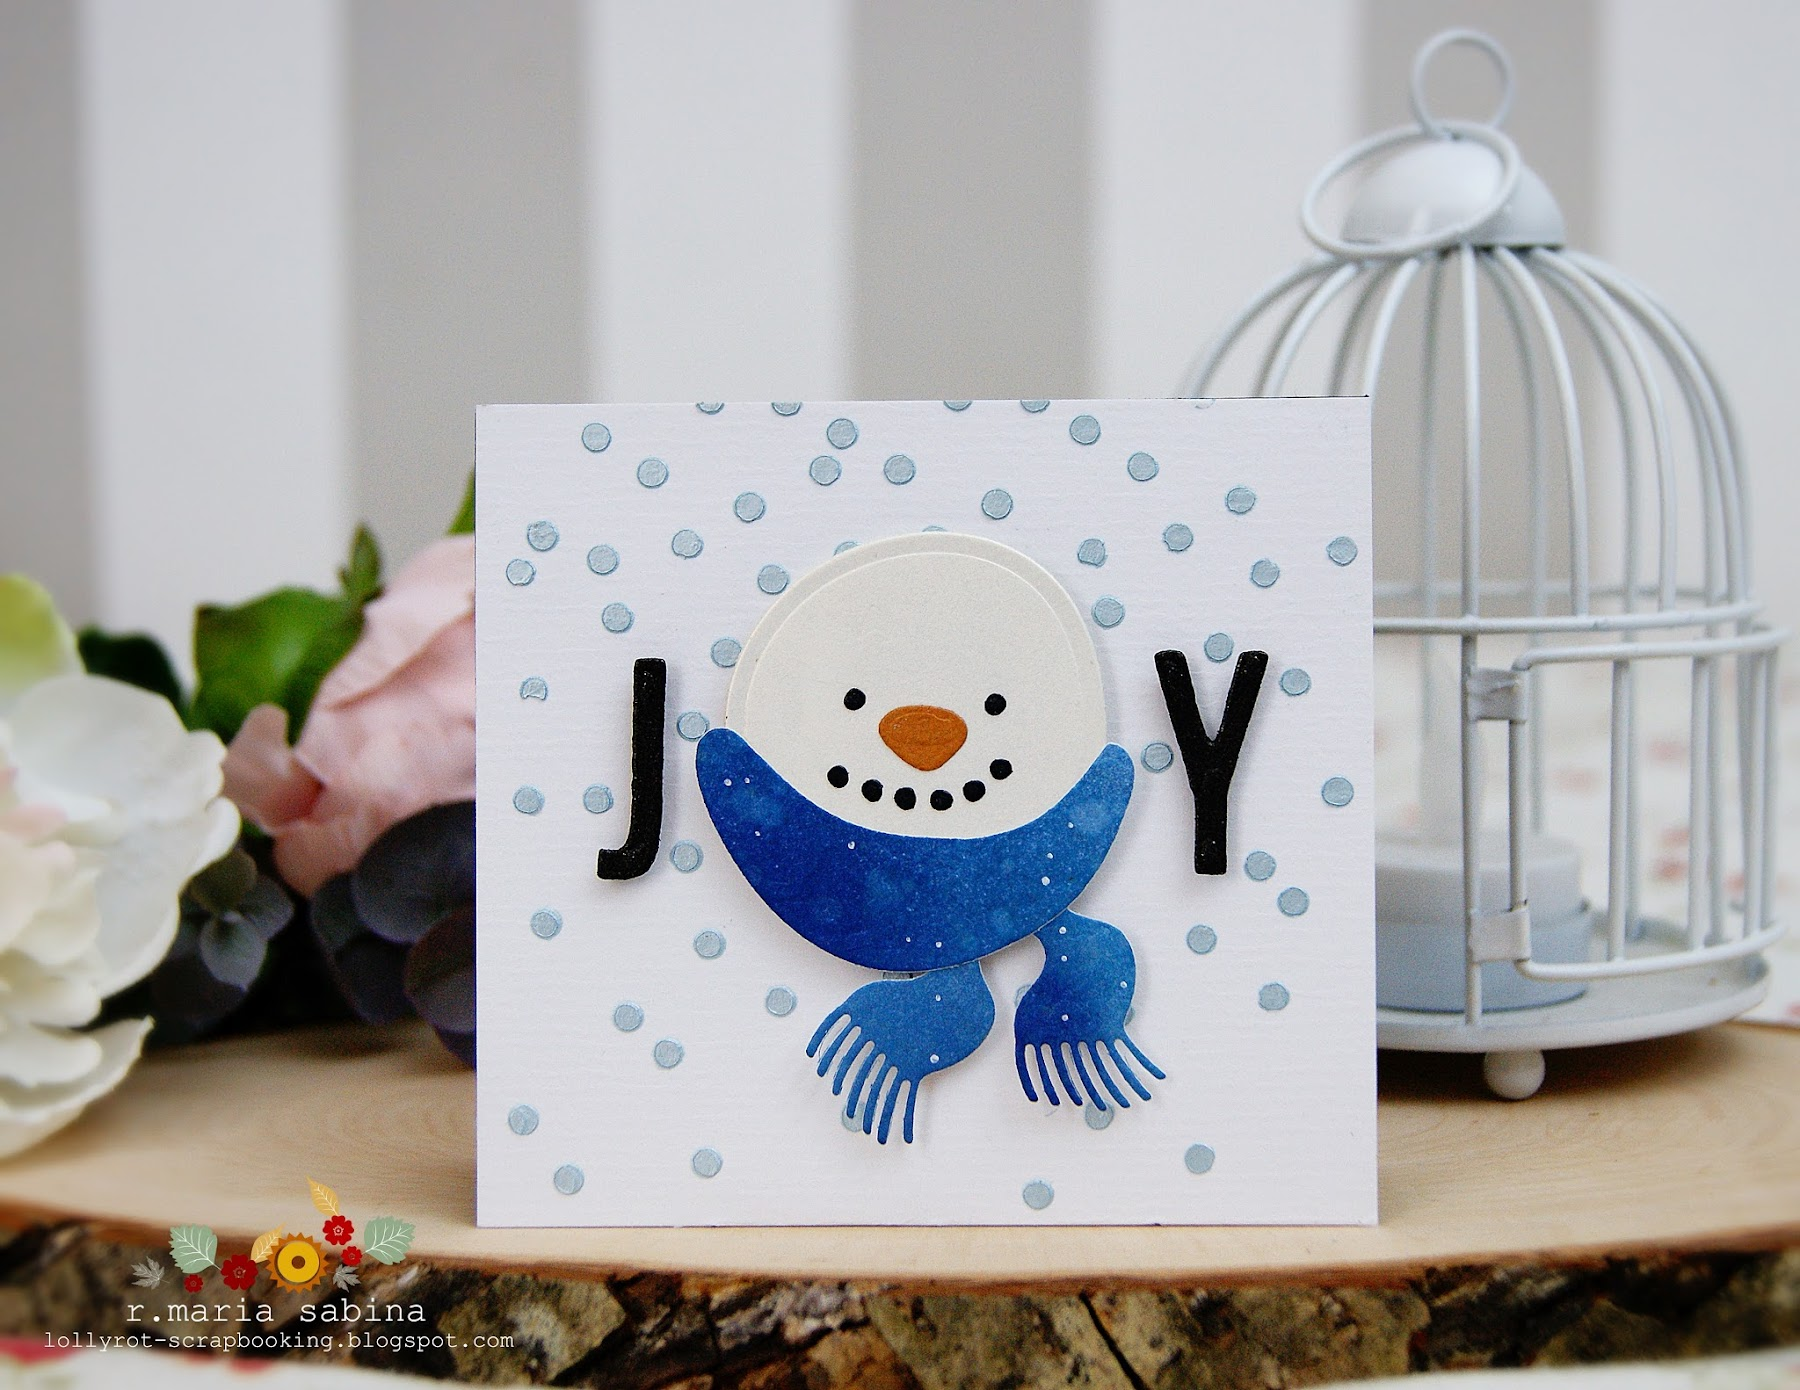 Lollyrot Scrapbooking: Easy Christmas Cards